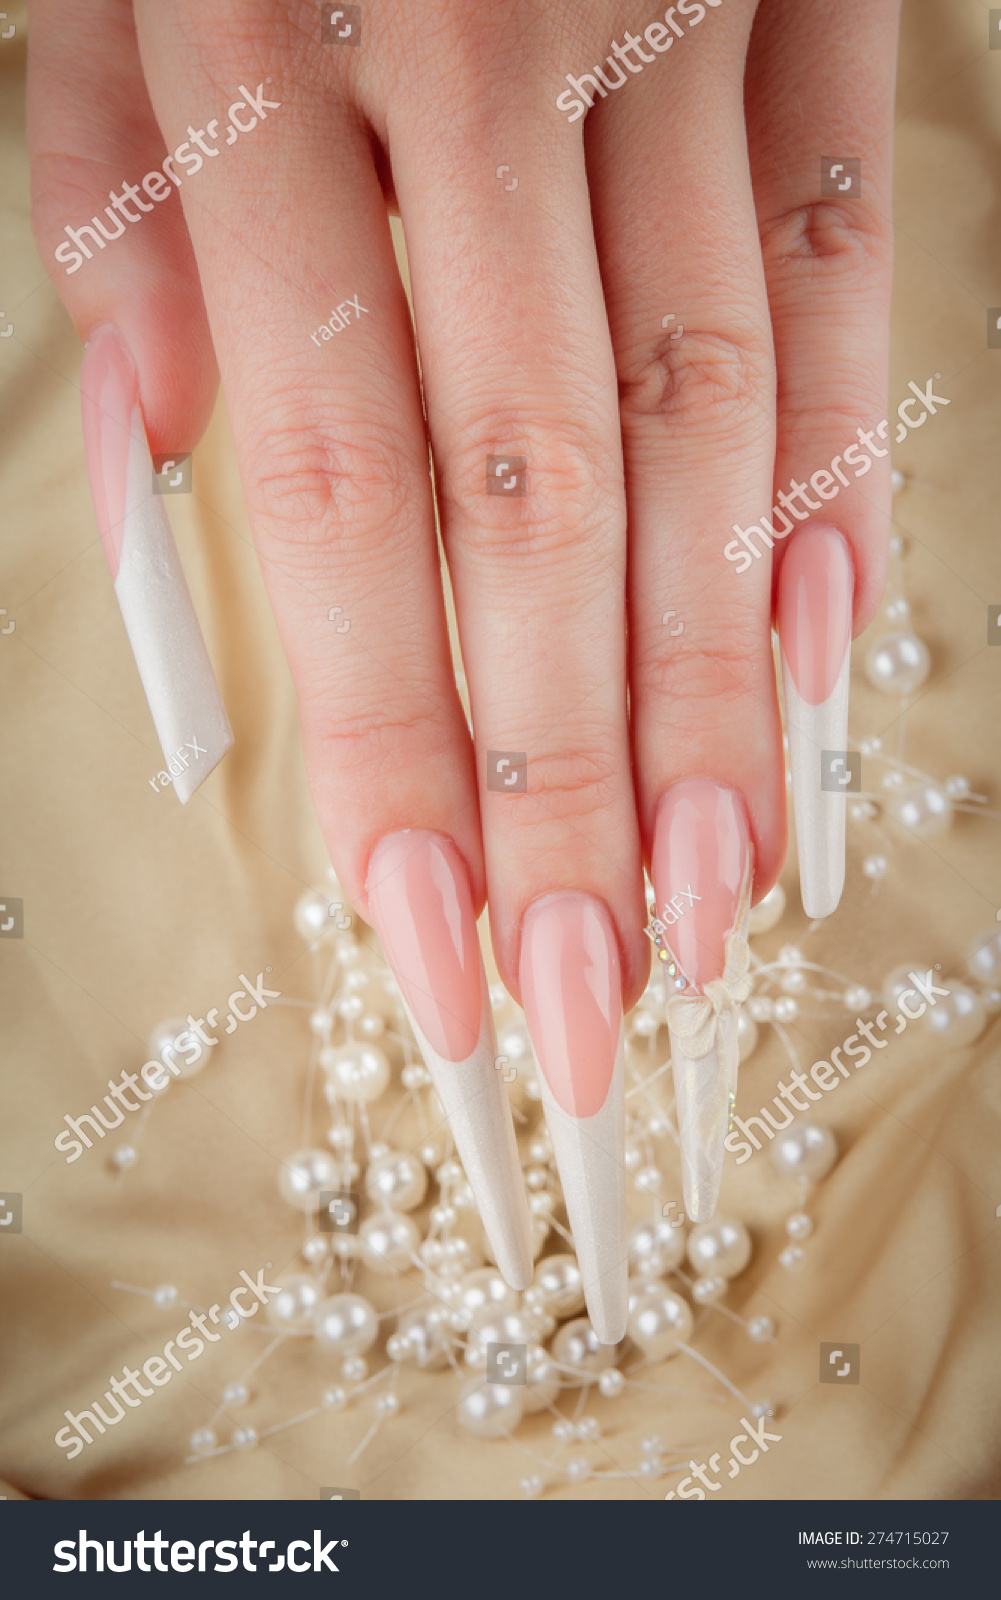 Painted Extreme Long Nails Hands Pearl Stock Photo 274715027 ...